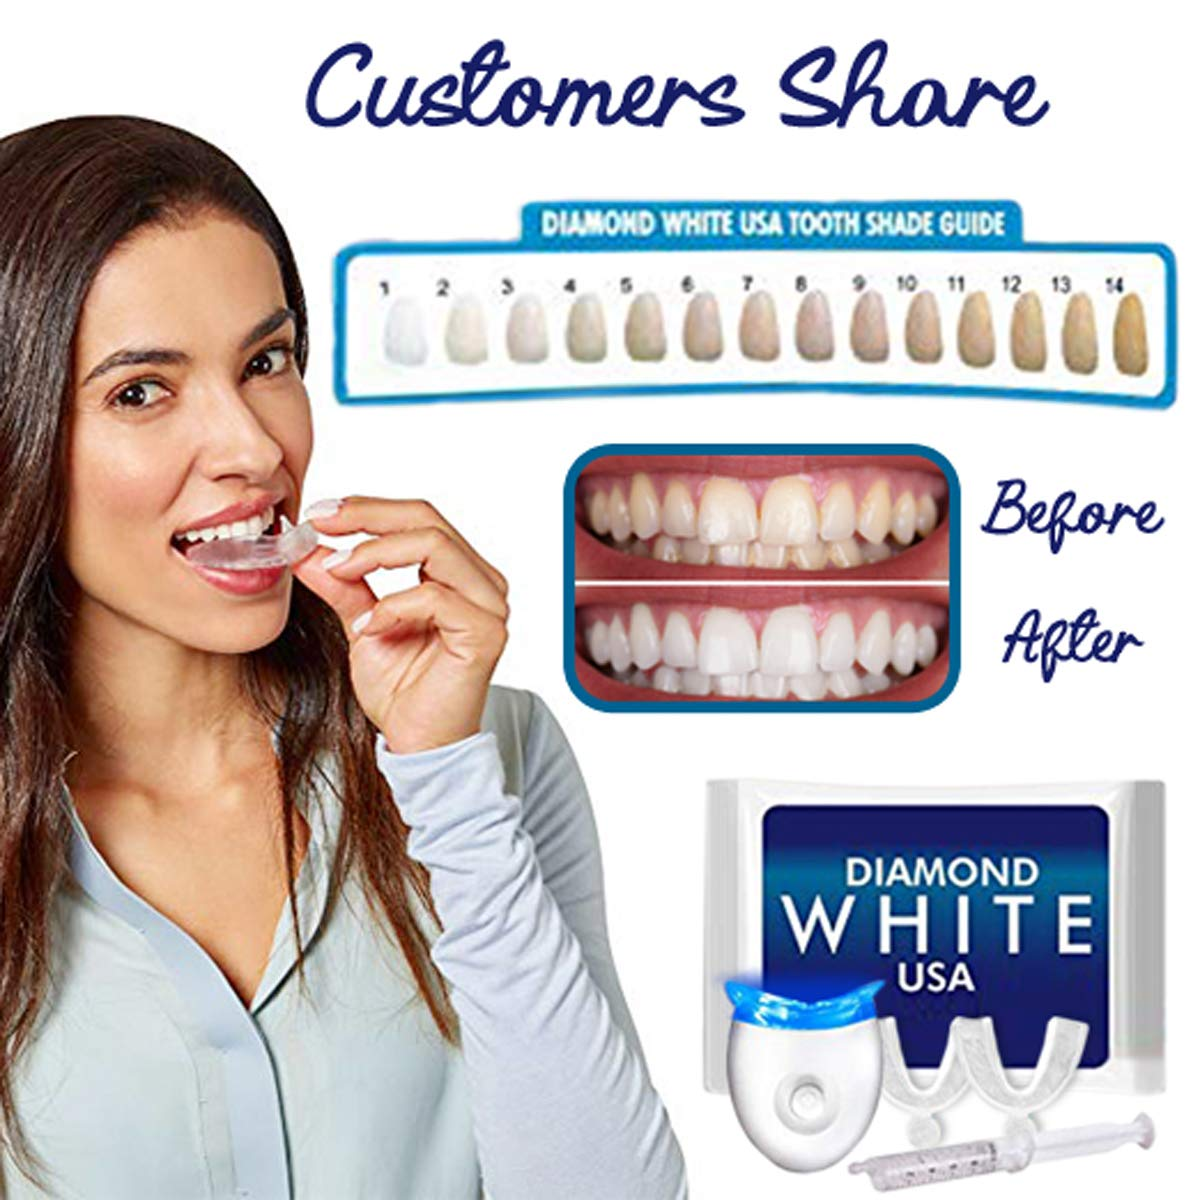 Diamond White Usa >> 3d Teeth Whitening Kit With Lifetime Gel Refills From Diamond White Usa